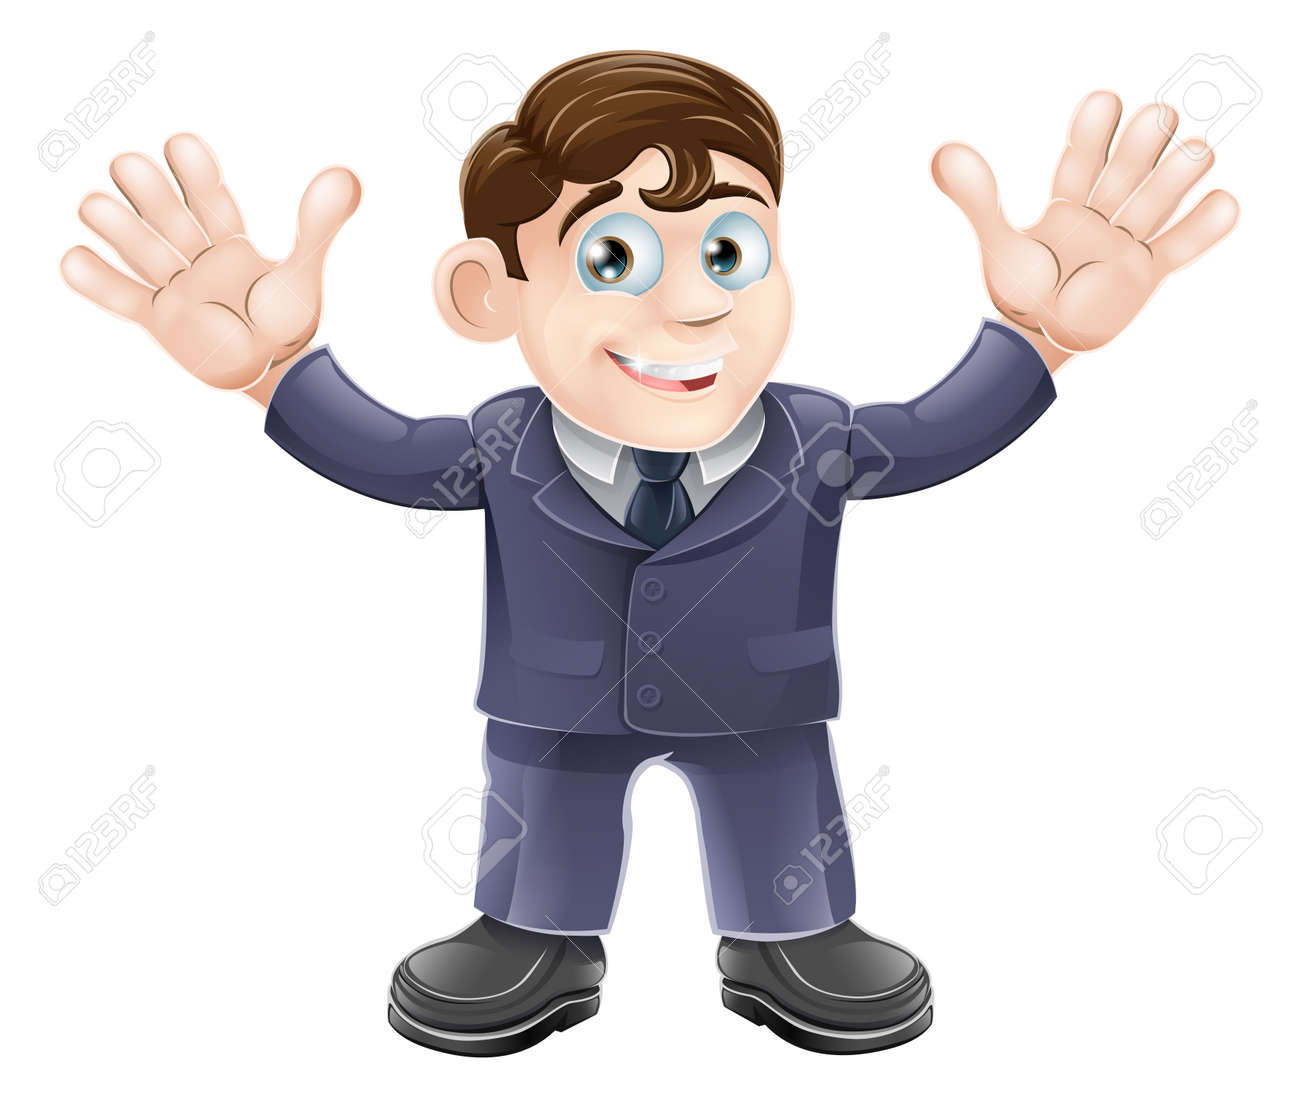 smart worker stock illustrations cliparts and royalty smart worker illustration of a cute businessman in a suit waving both hands and